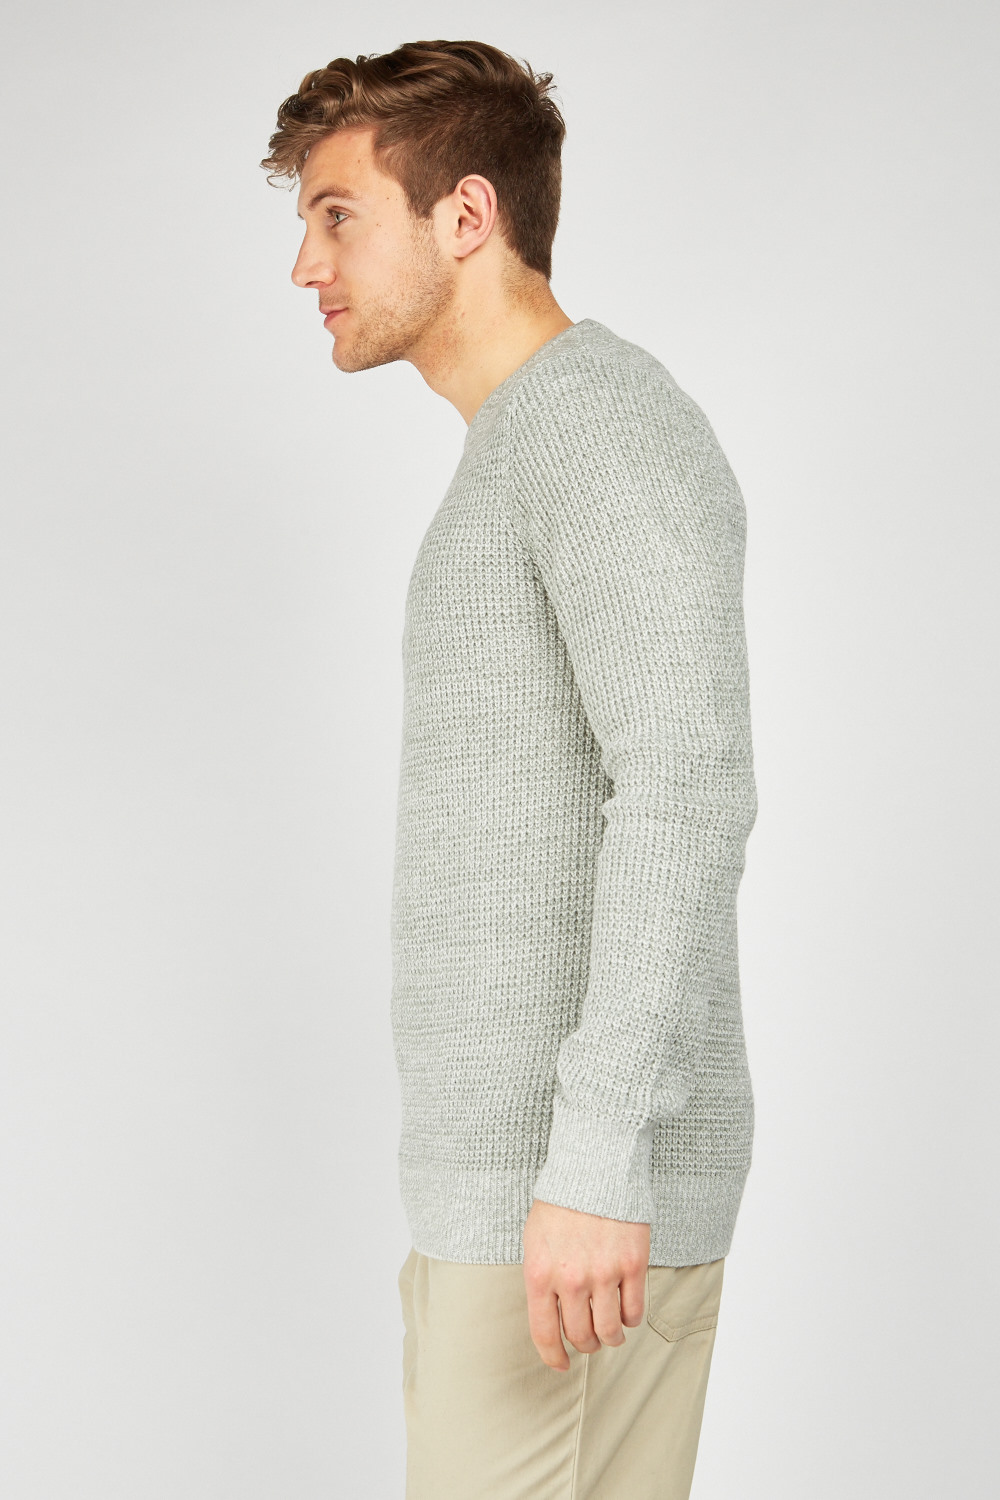 Crew Neck Knit Jumper Light Grey Off White Just 163 5